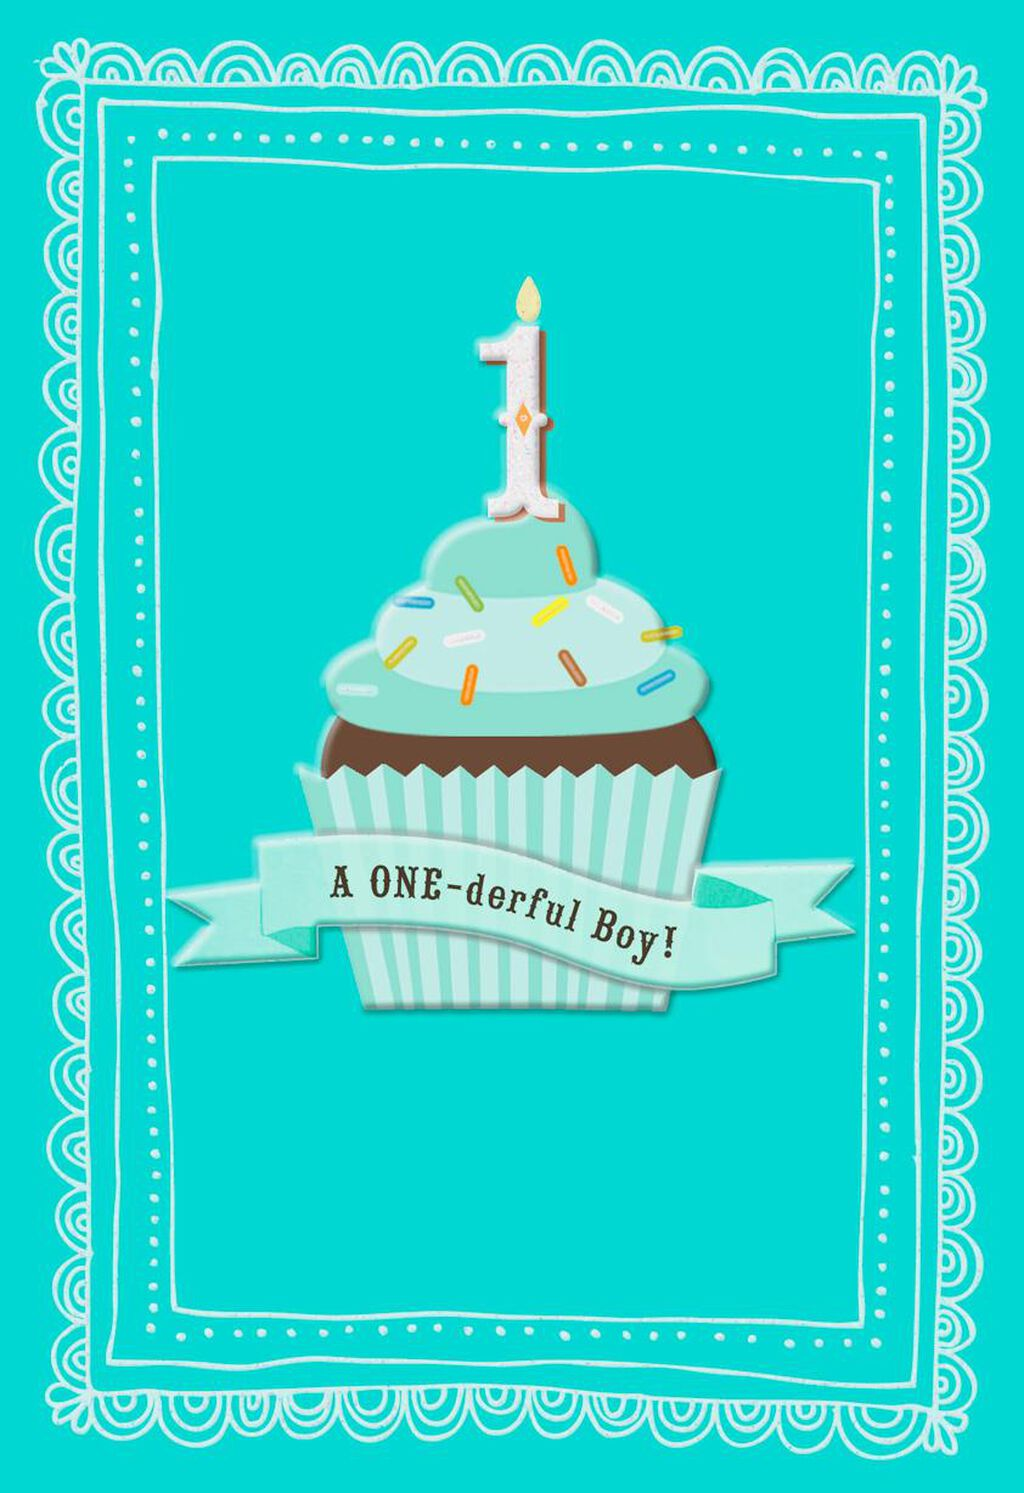 ONE Derful First Birthday Card For Boy